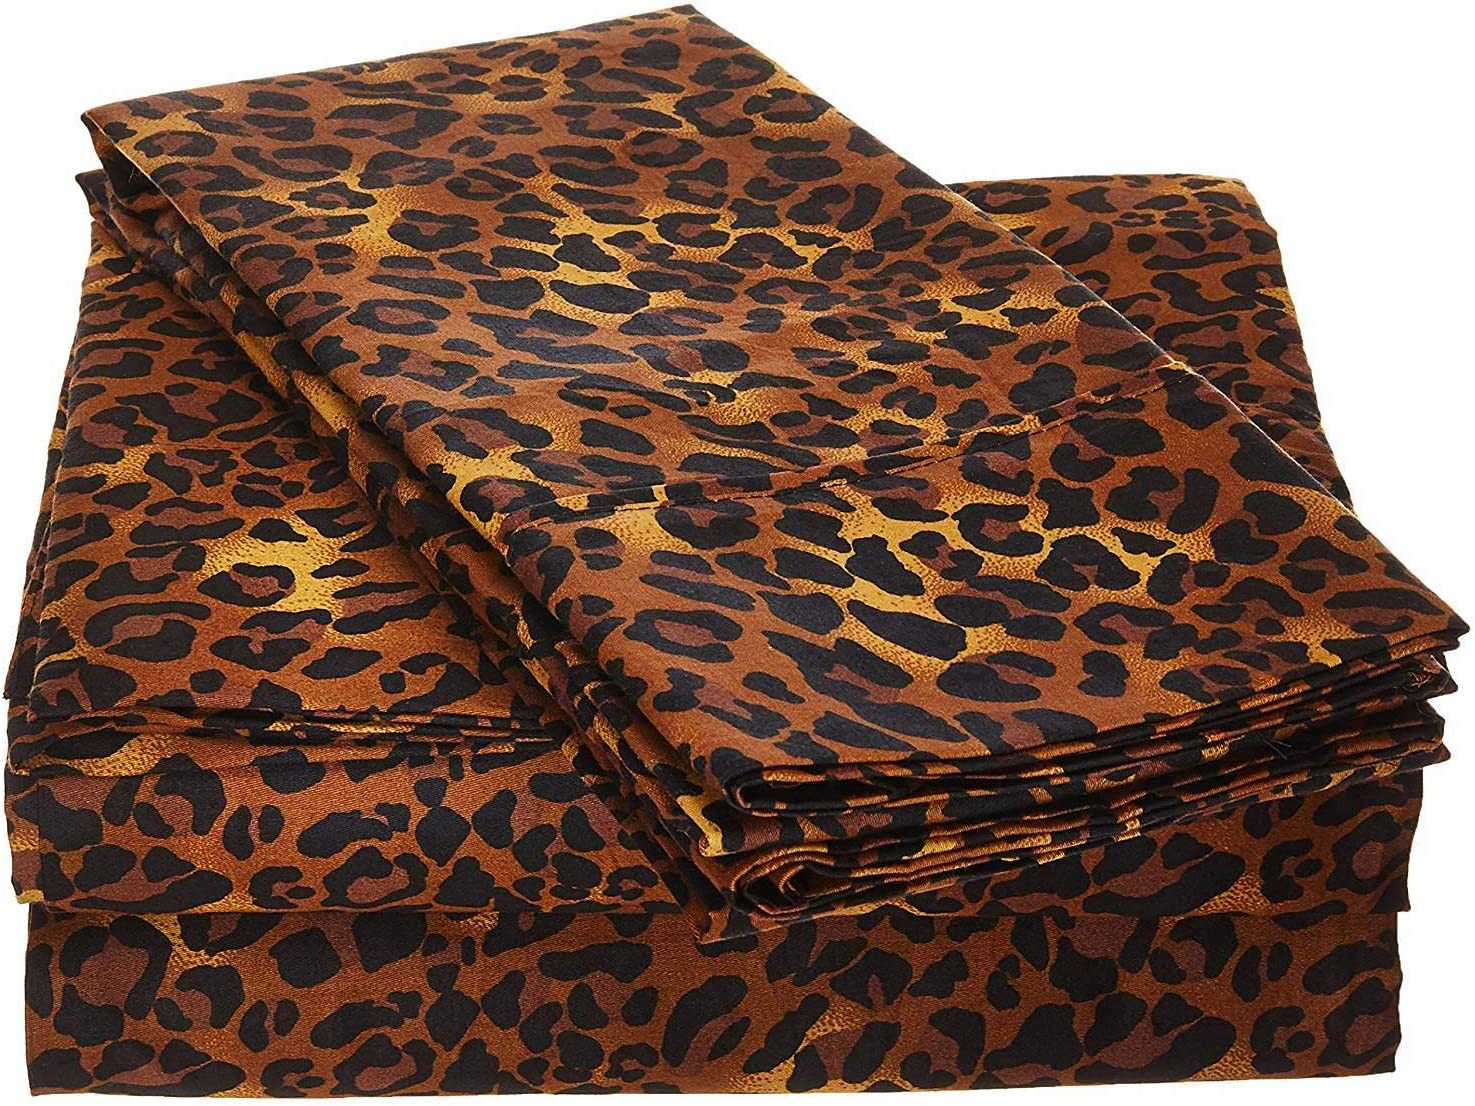 Elite Home Regal Collection 300 Thread-Count Leopard Print King Sheet Set, Brown